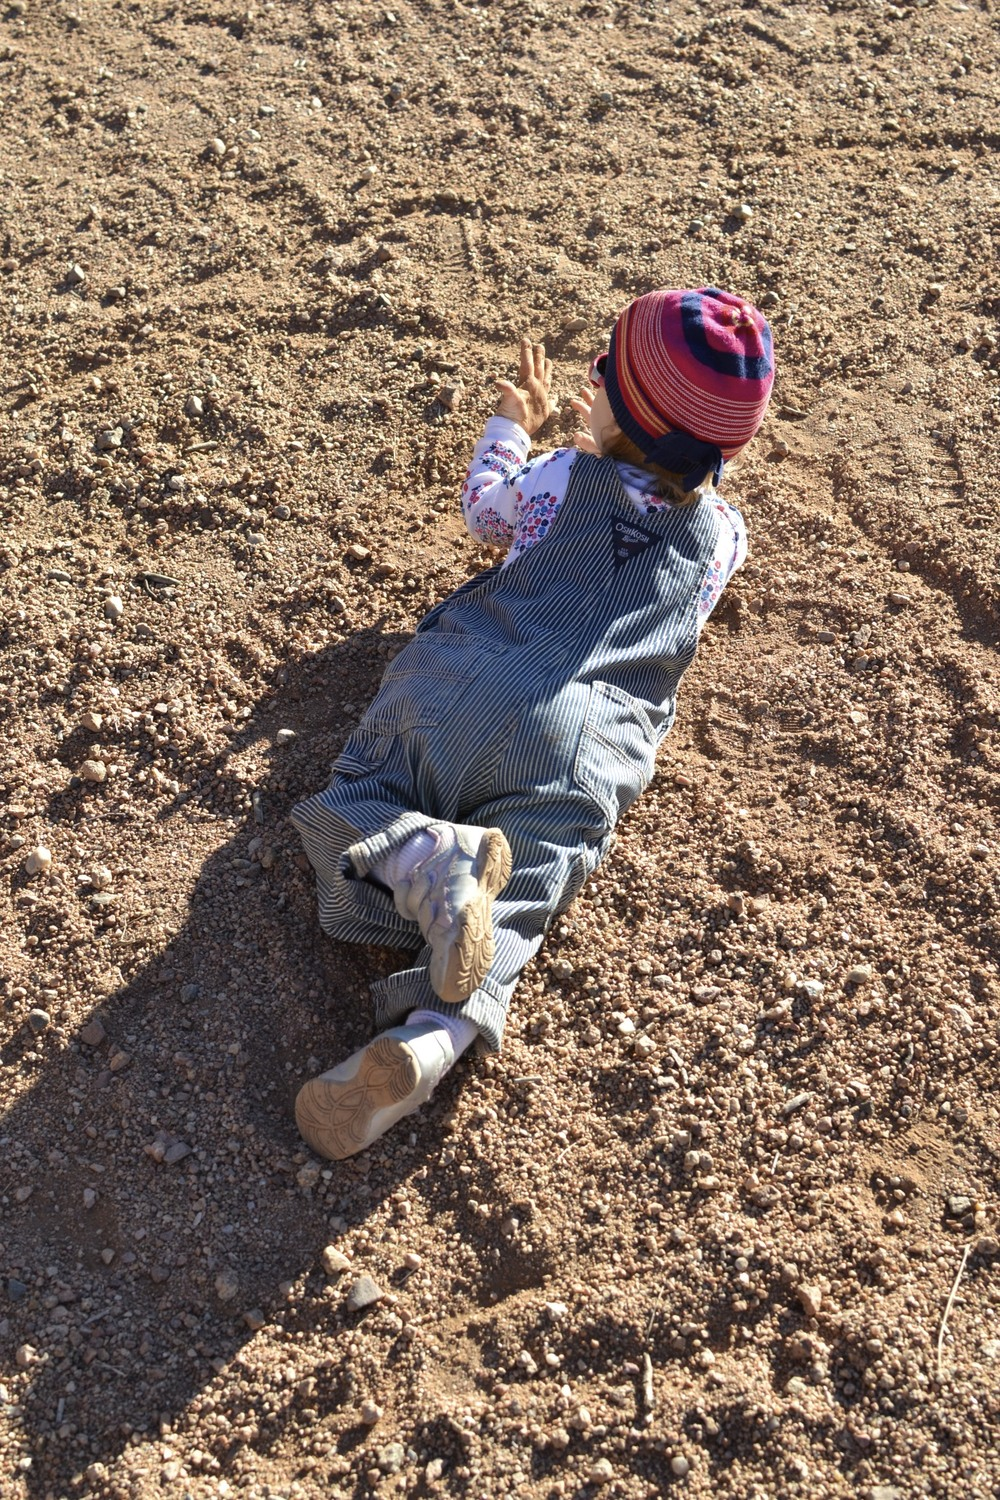 a good hike is never complete without a roll in the dirt...or something like that.